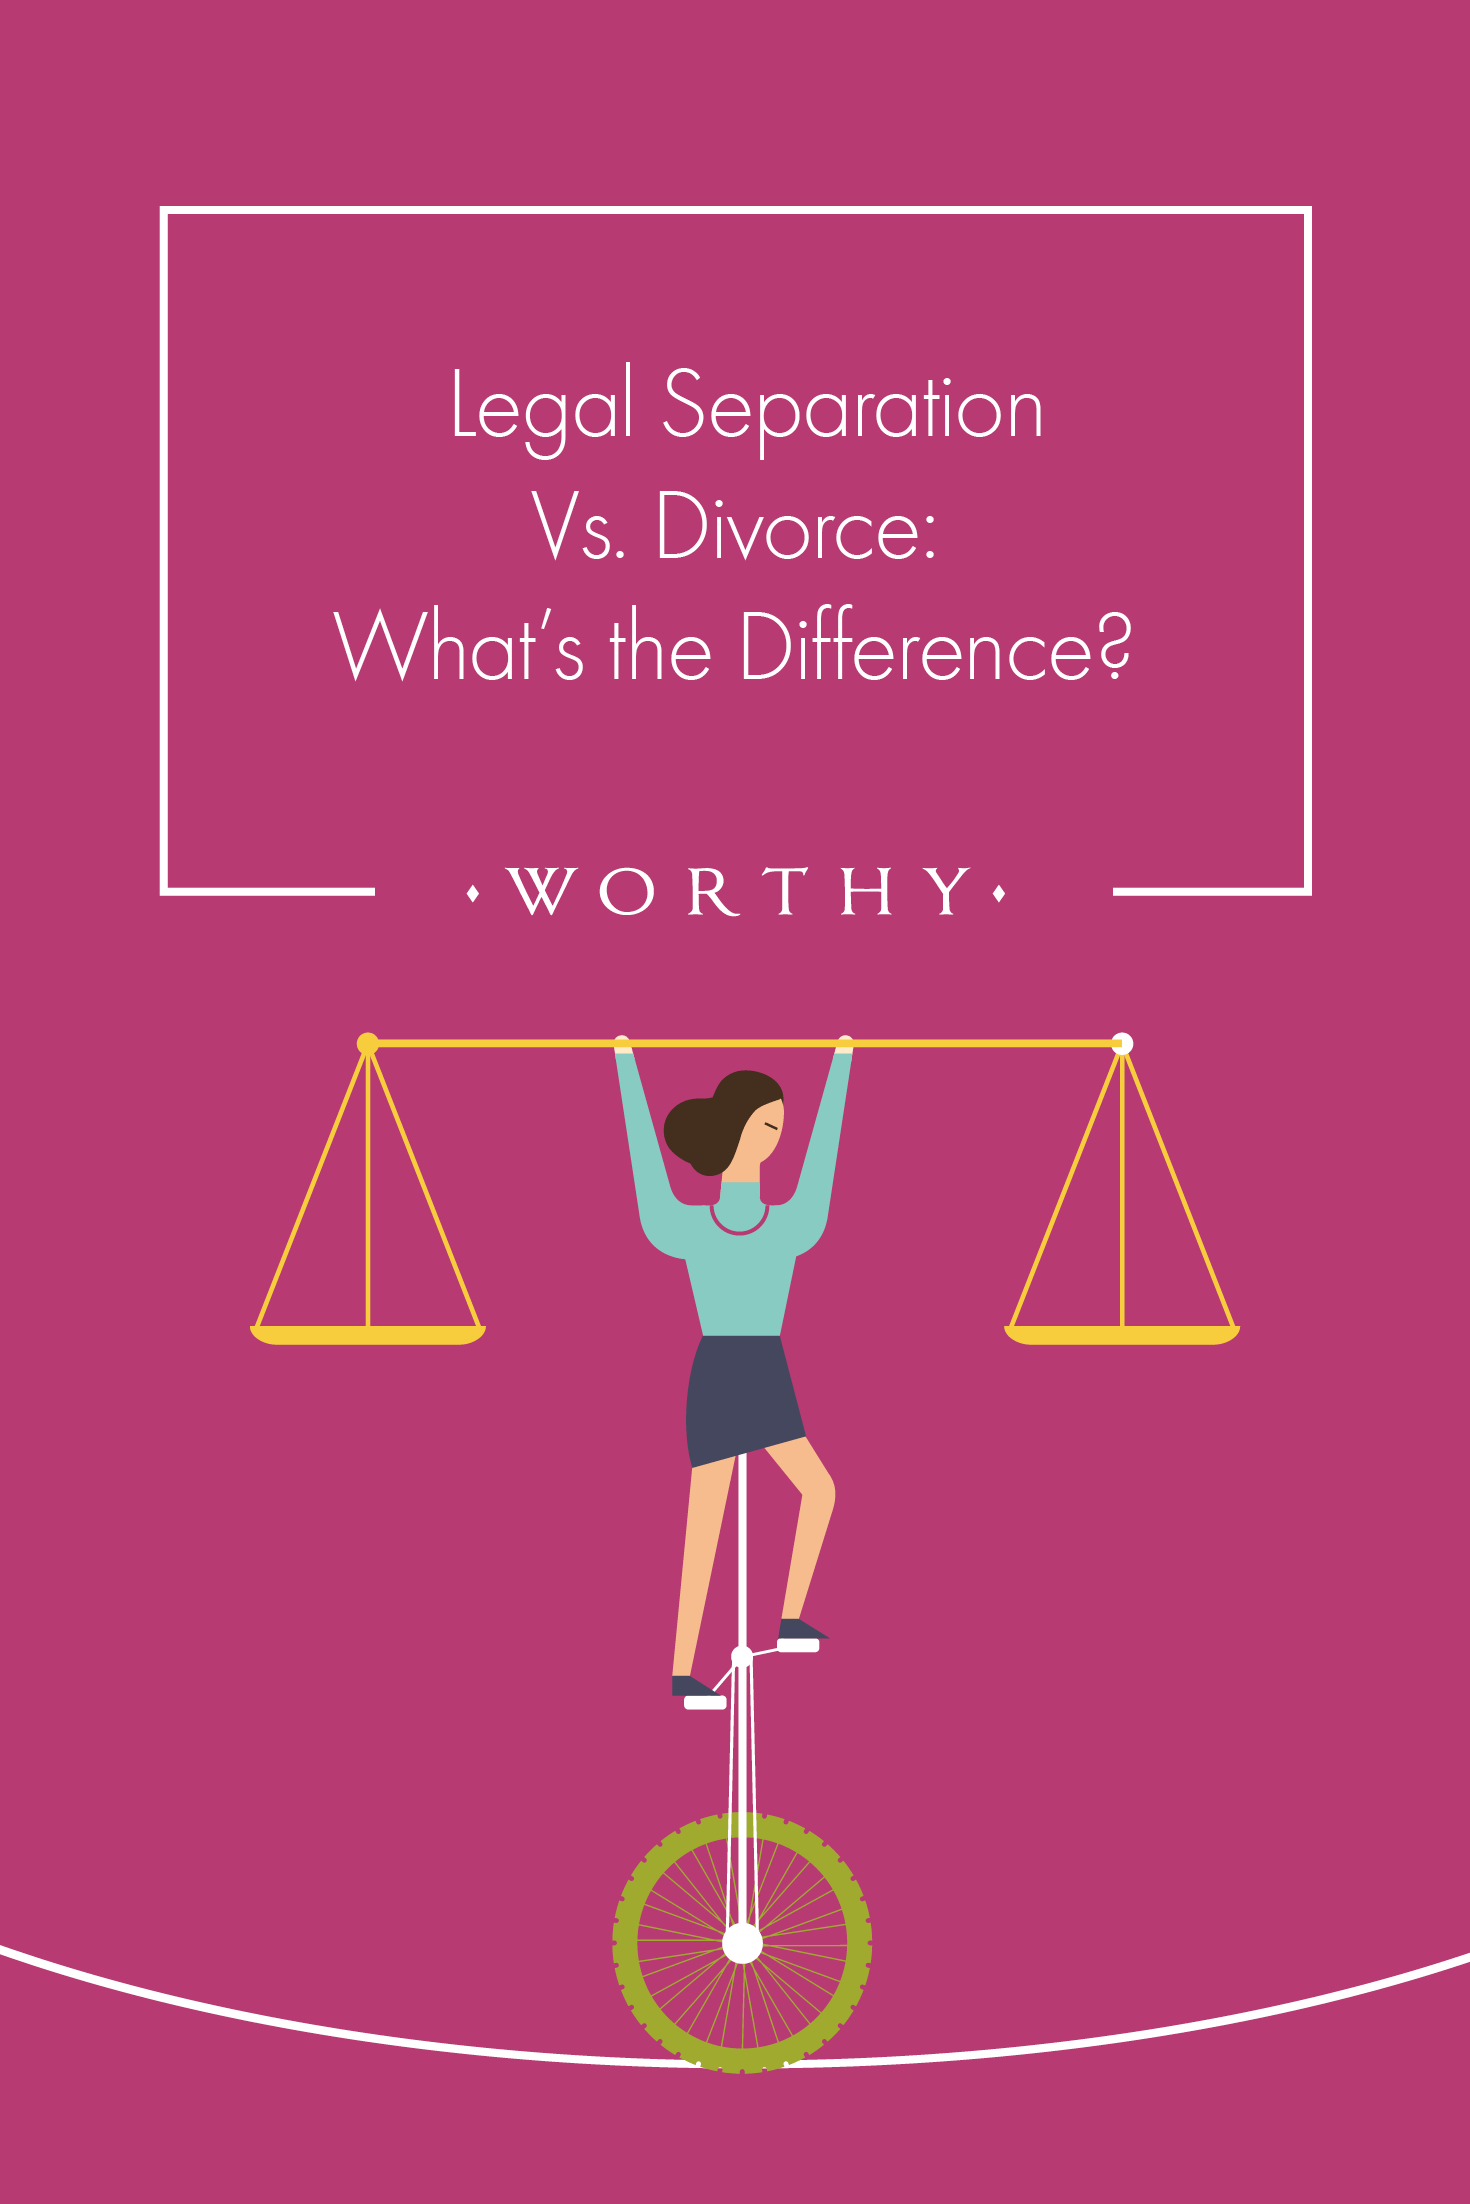 The idea of legal separation sounds simple at first, but there are a few more significant distinctions to be made about legal separation vs divorce.